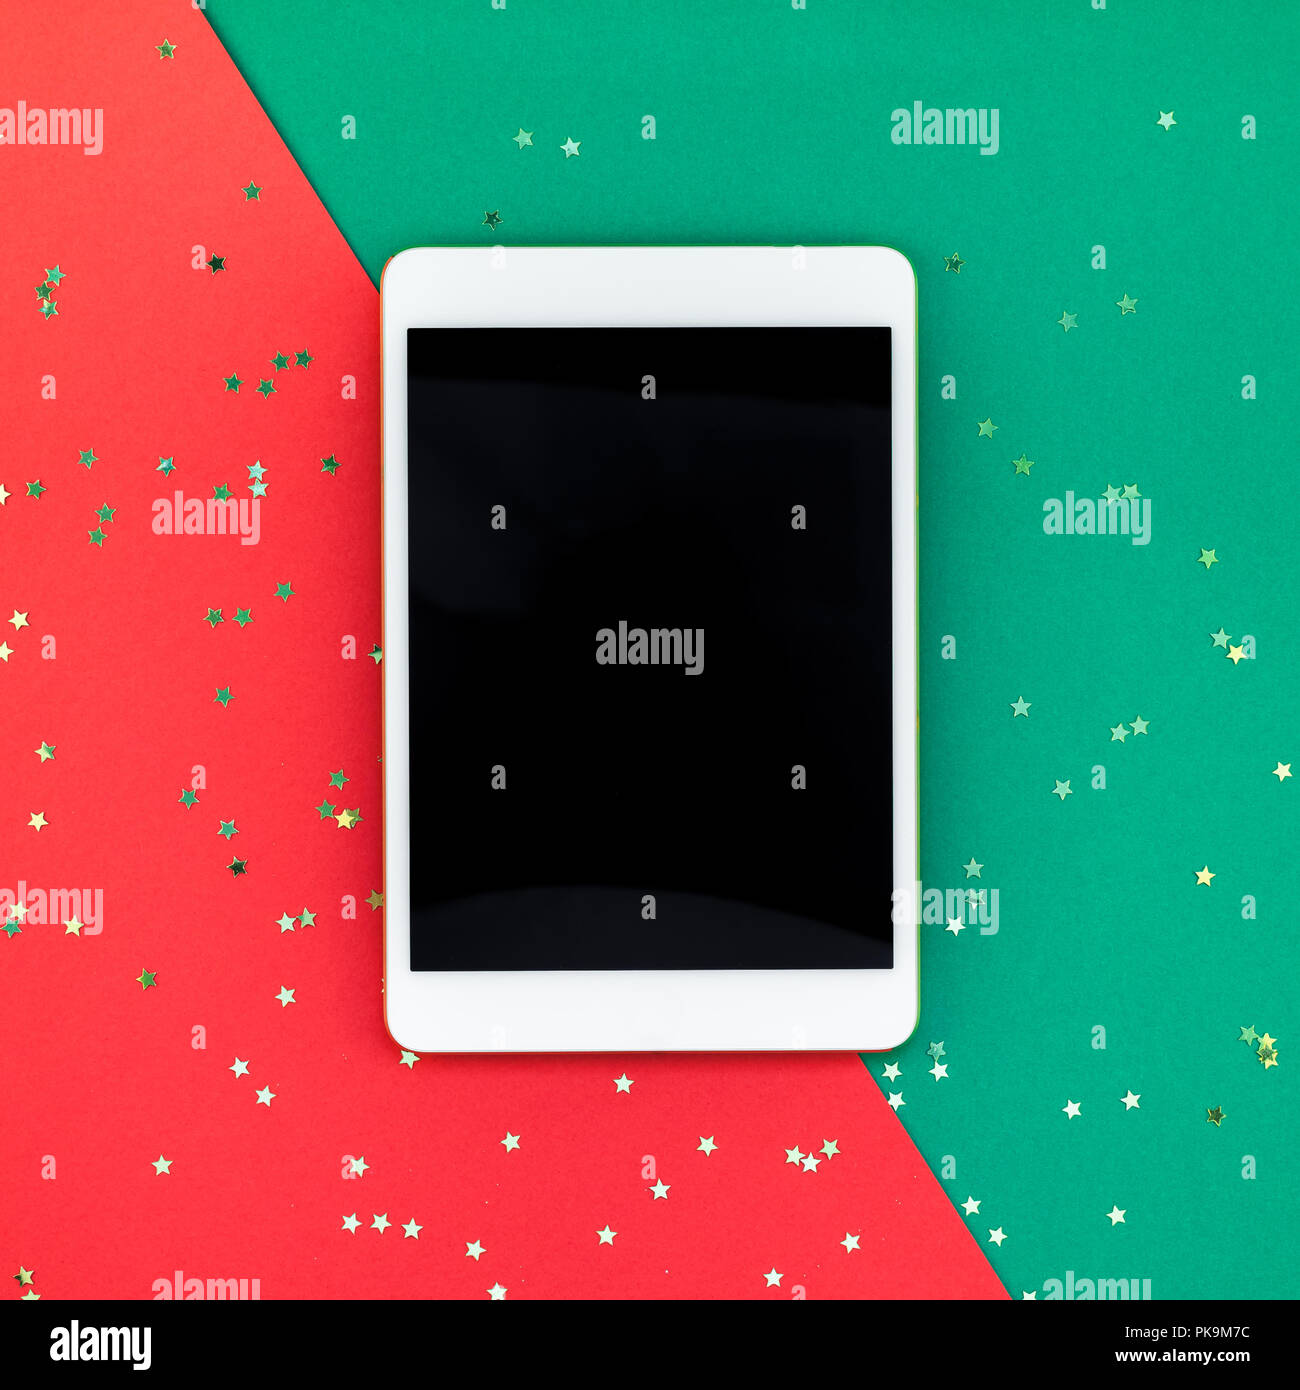 creative new year or christmas tablet pc mockup flat lay top view xmas holiday celebration mobile device ipad on red green paper background template